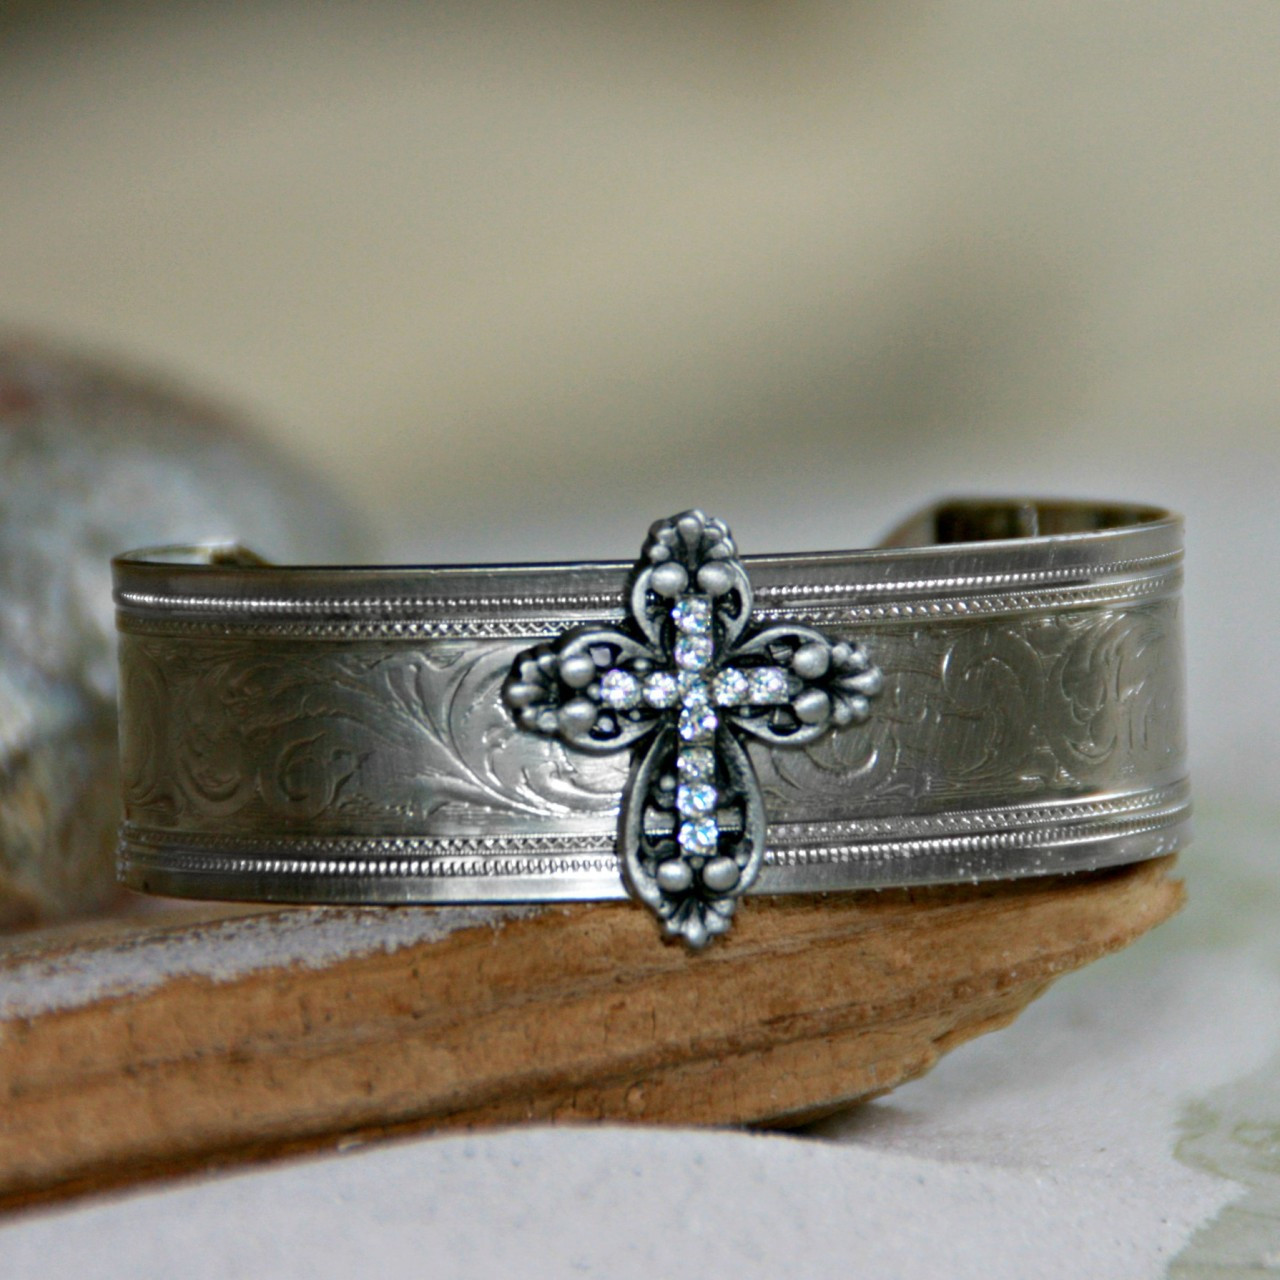 ART-132 Cross with Swarovski Crystals Cuff Bracelet